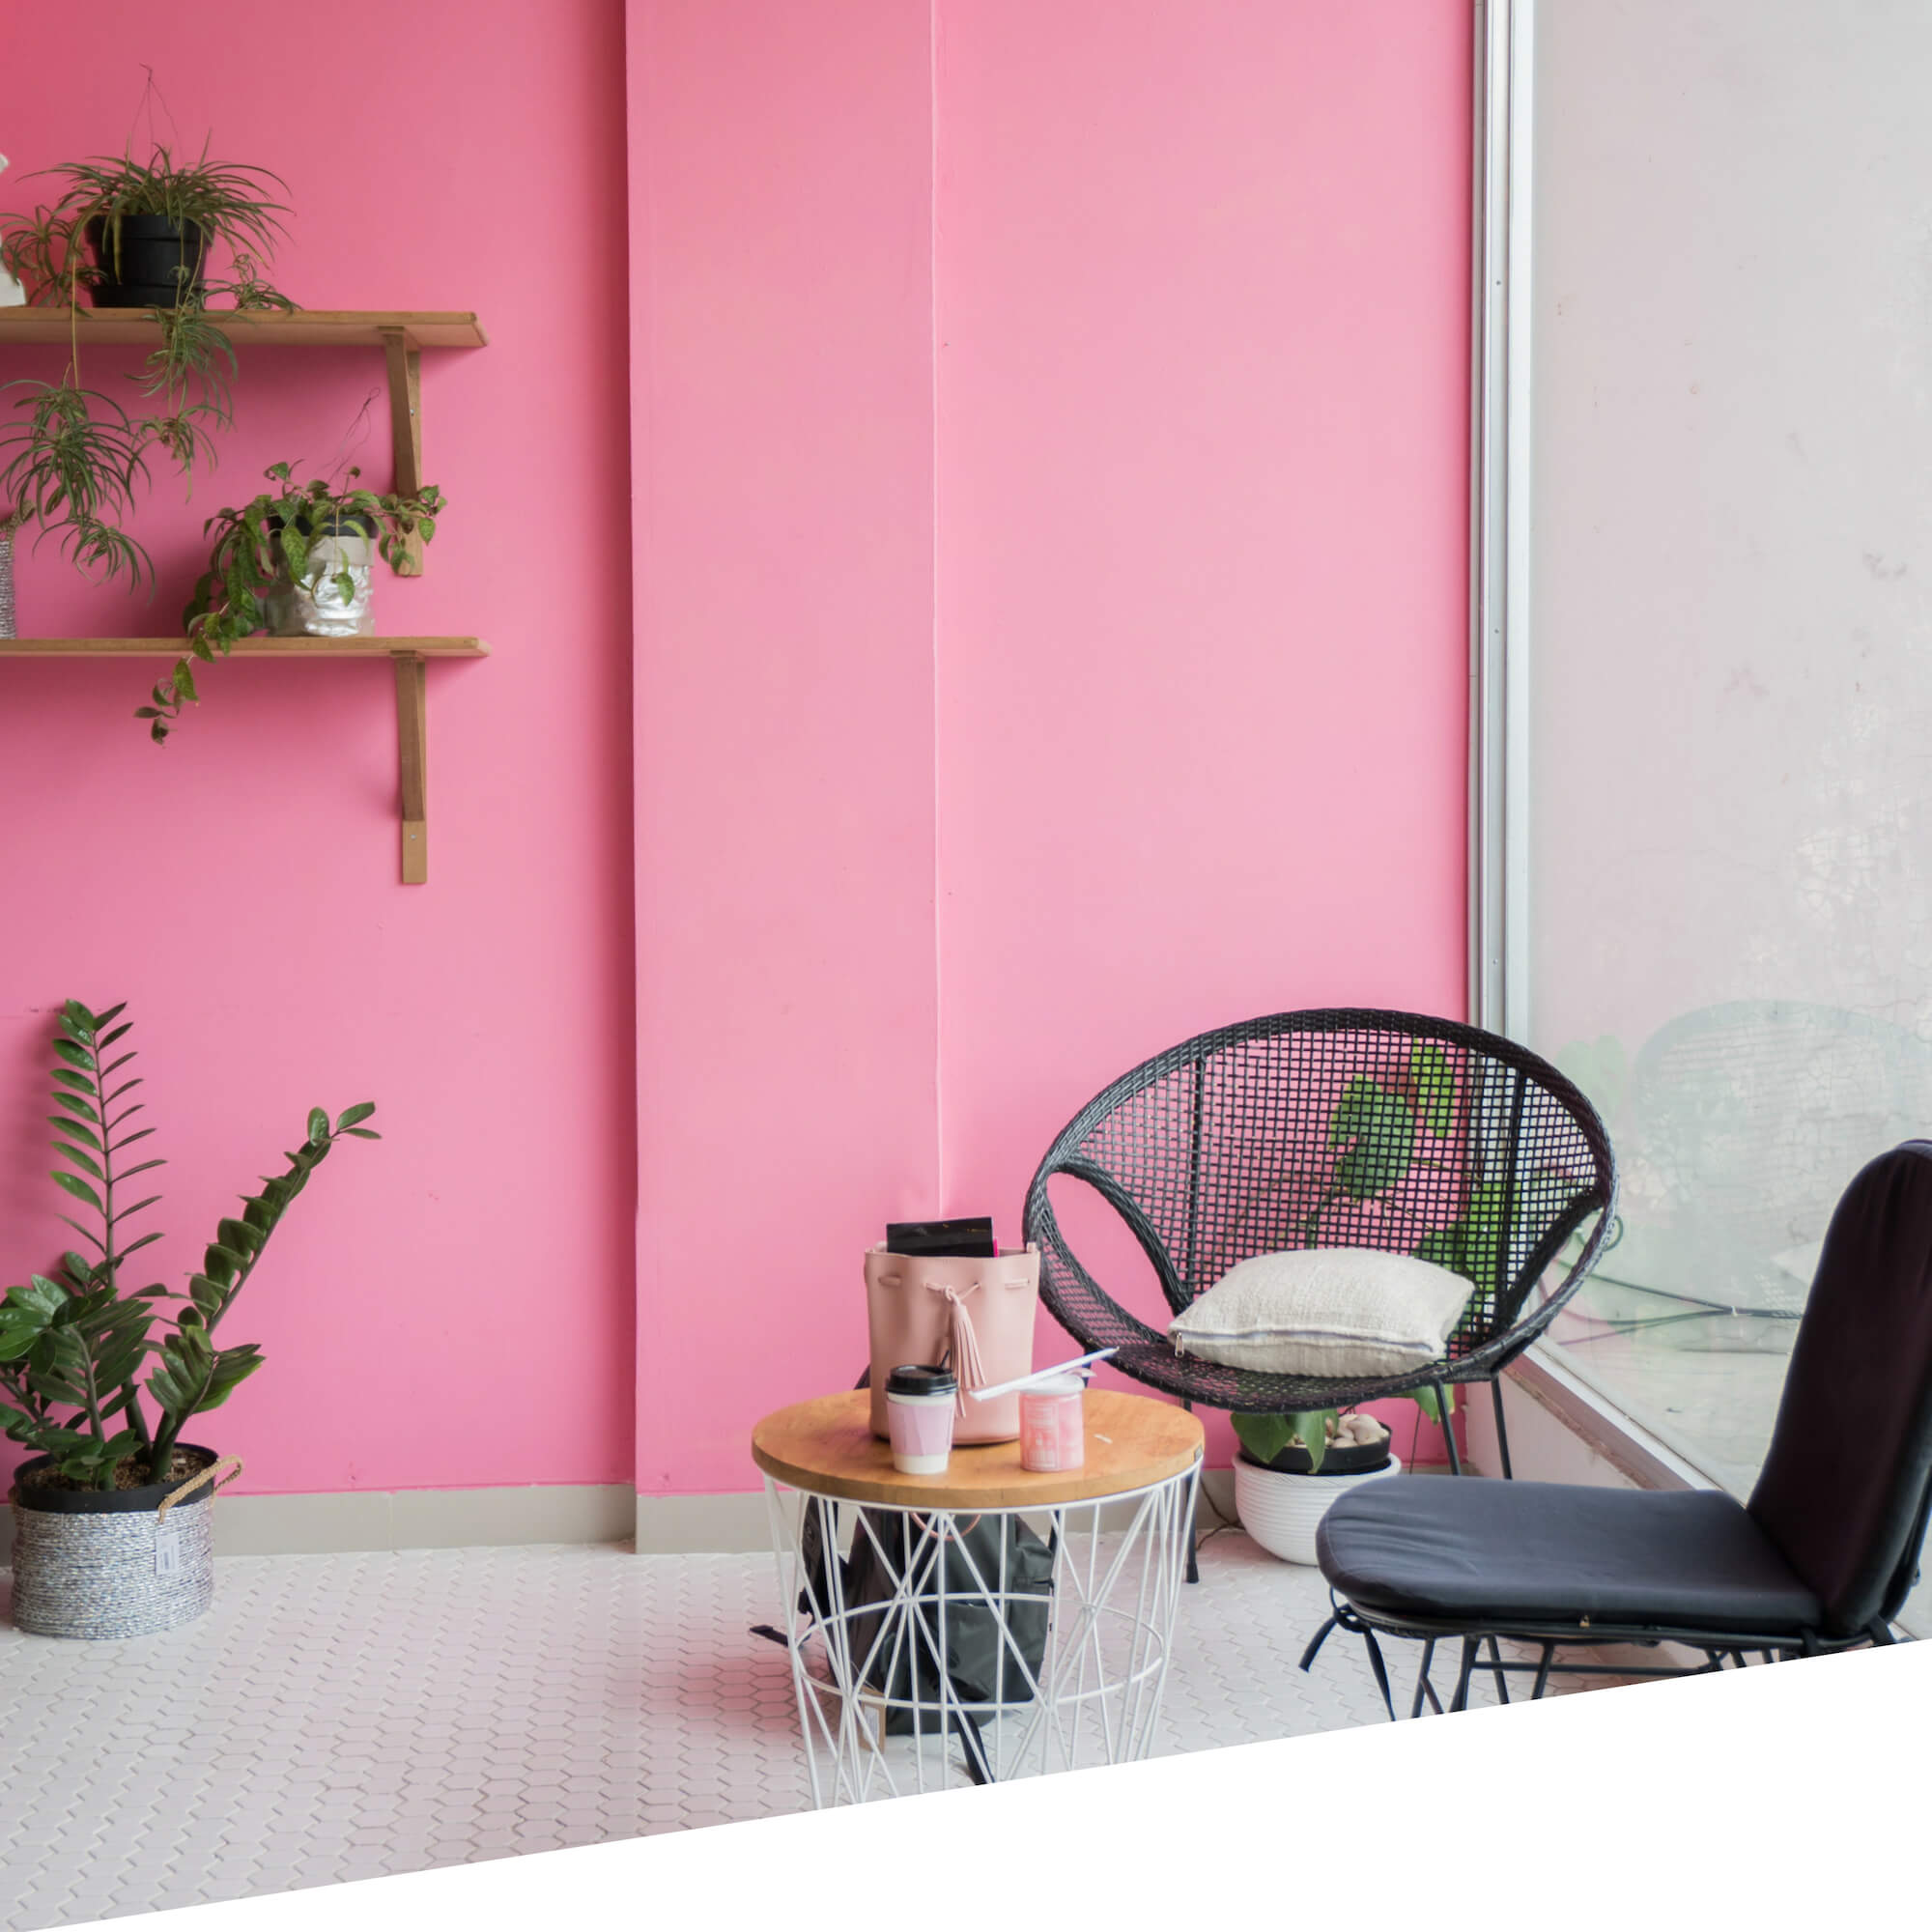 Casual seating with bright pink backdrop